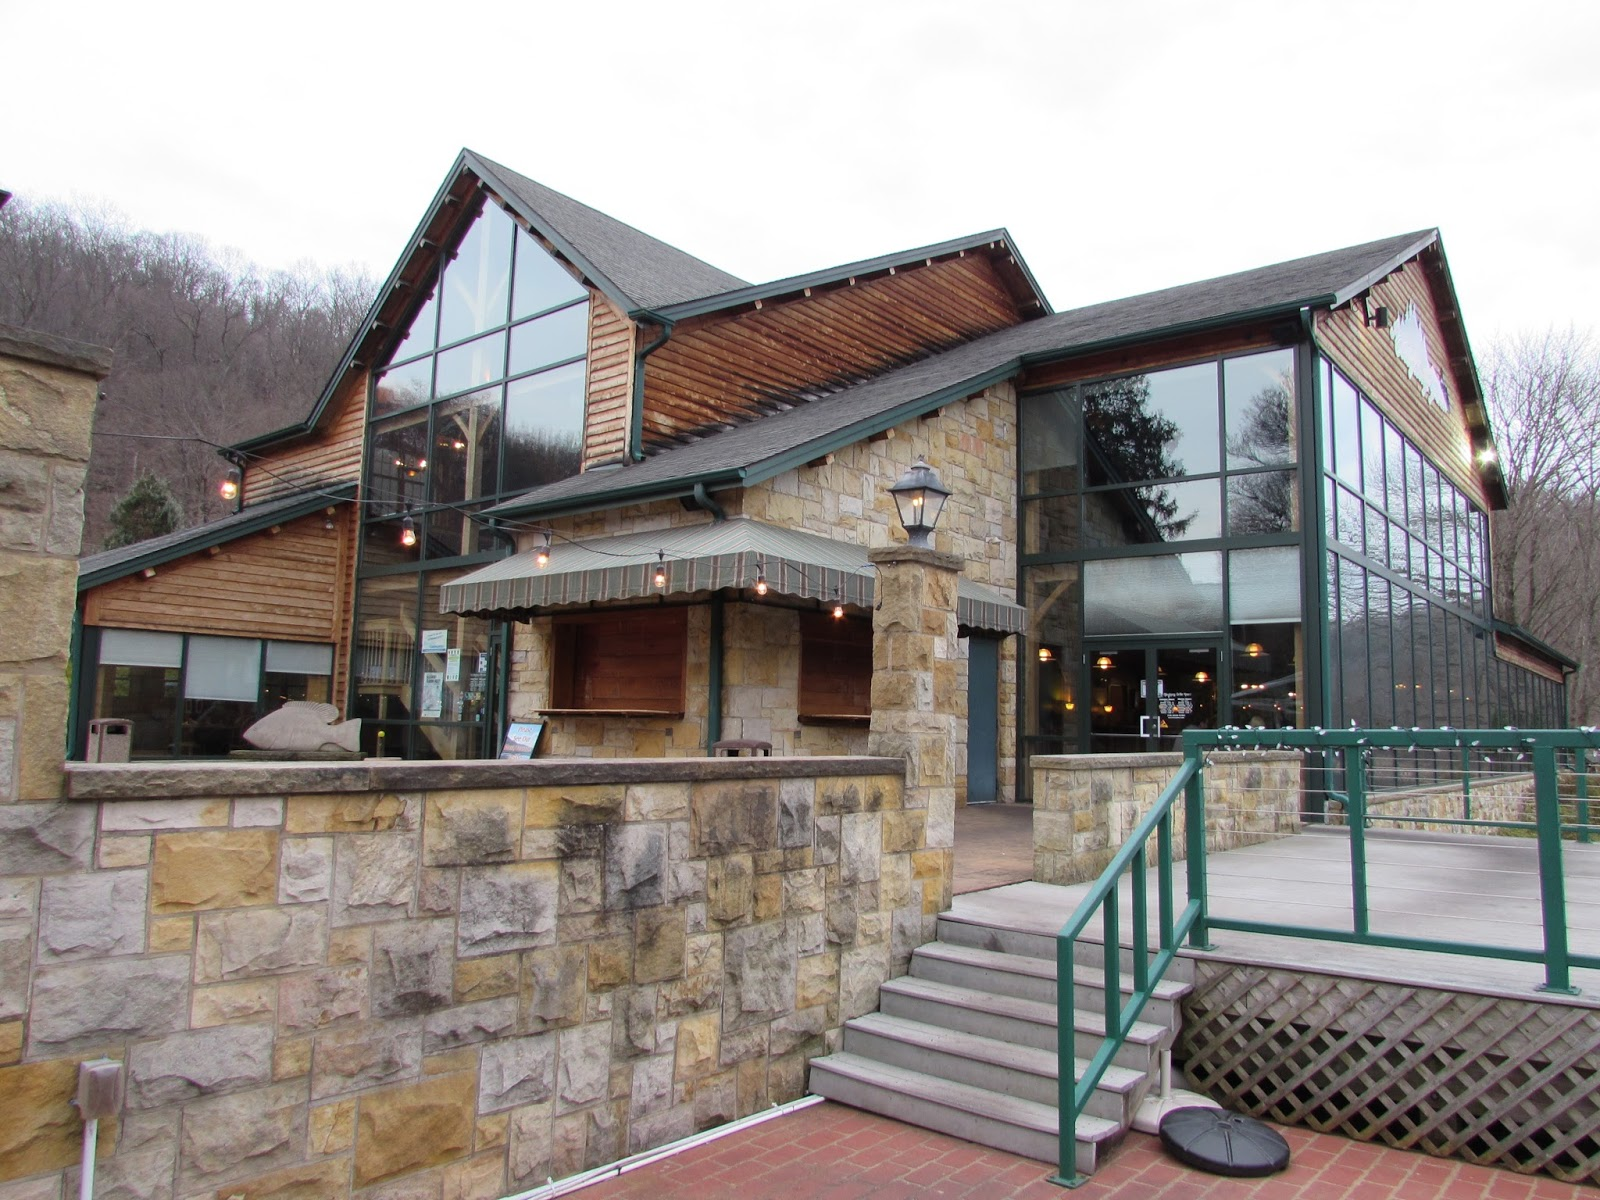 Allegheny Grille: Foxburgs Riverside Restaurant with Good